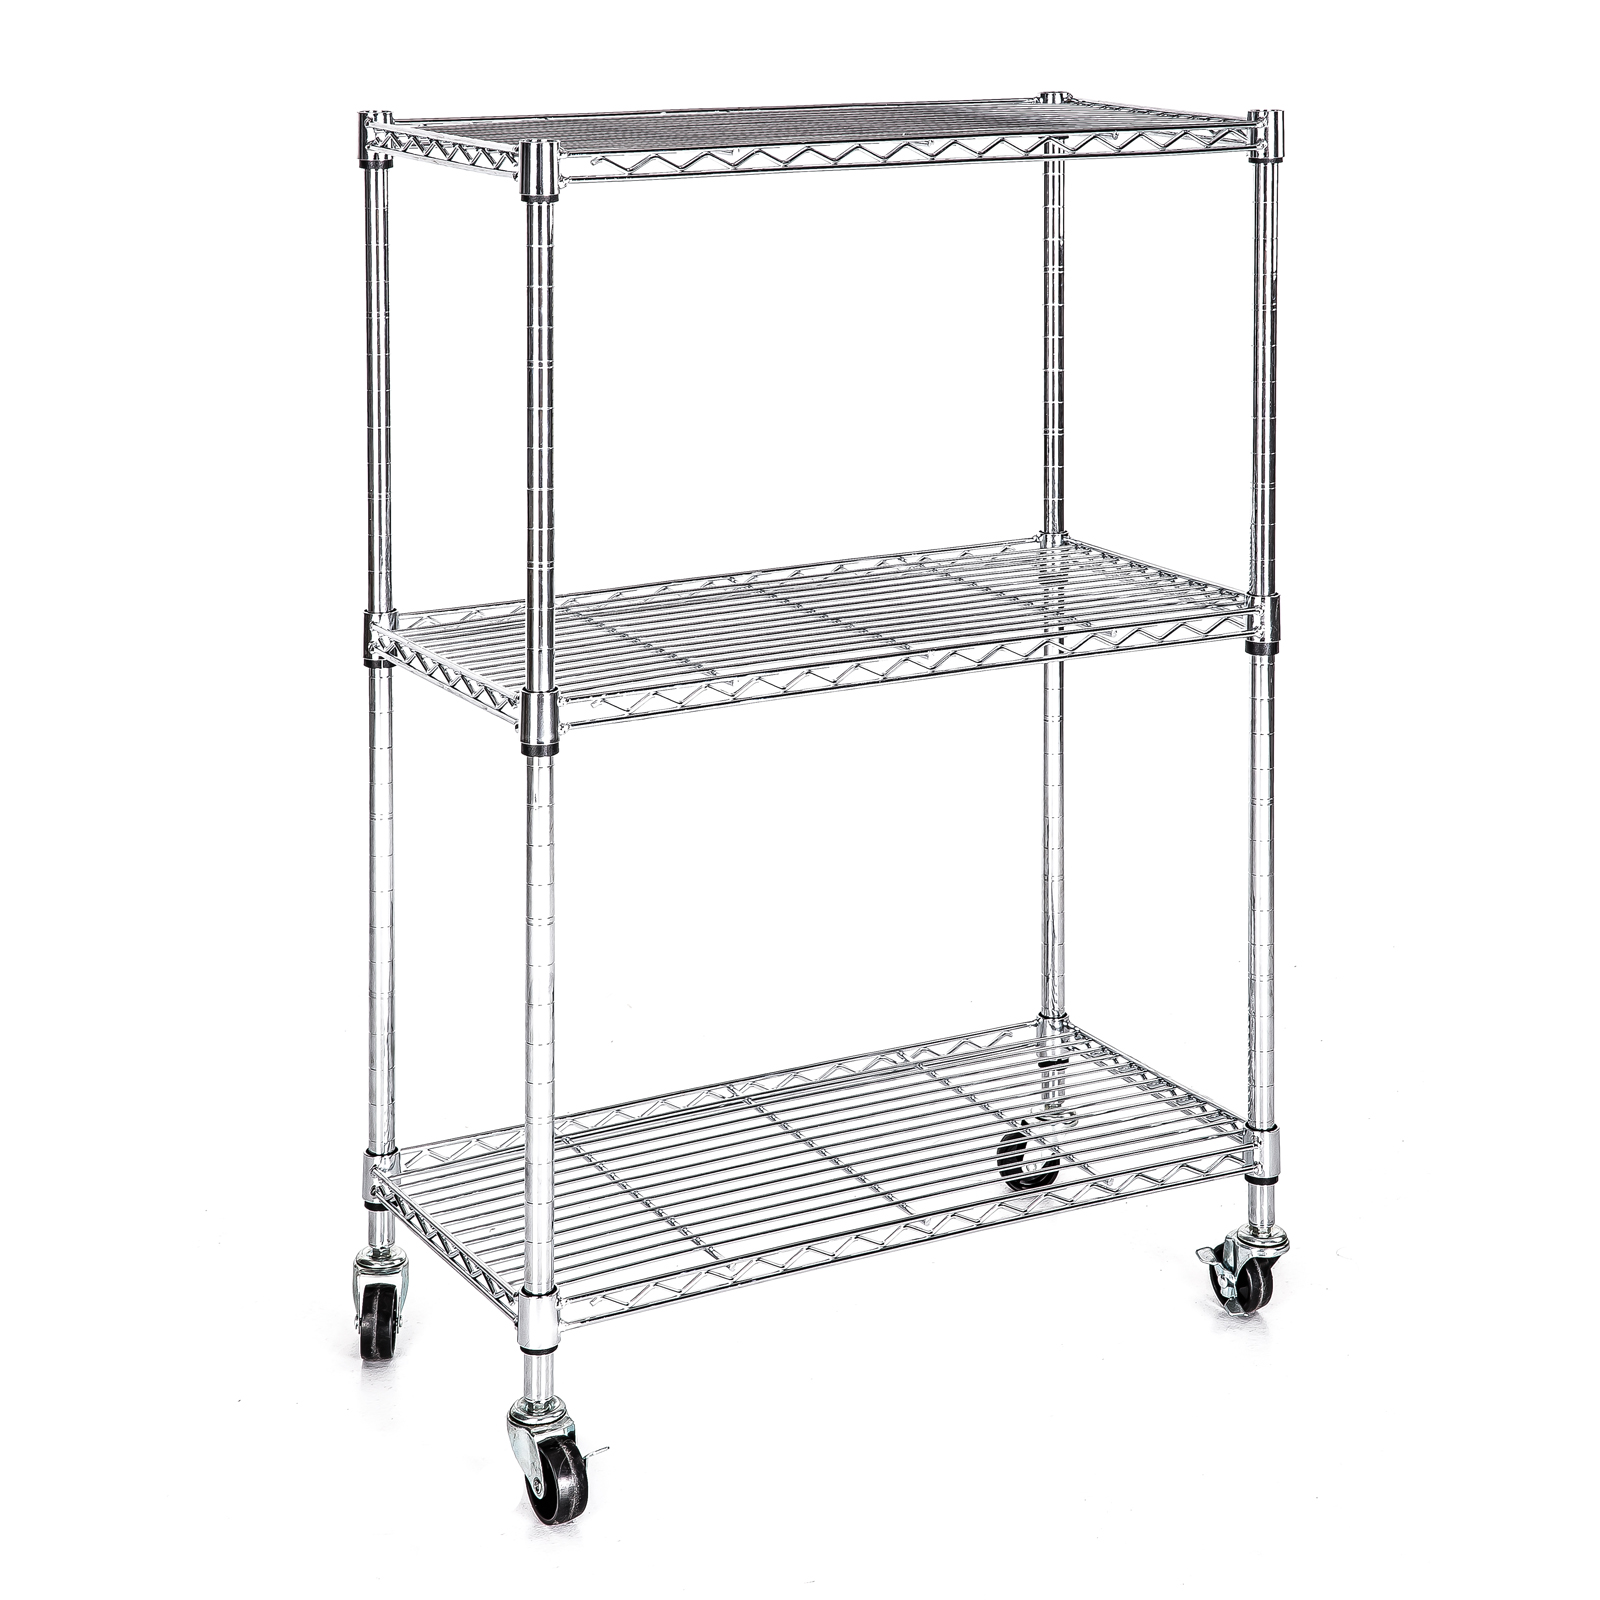 heavy duty chrome 3 tier wire shelving rack cart unit w. Black Bedroom Furniture Sets. Home Design Ideas